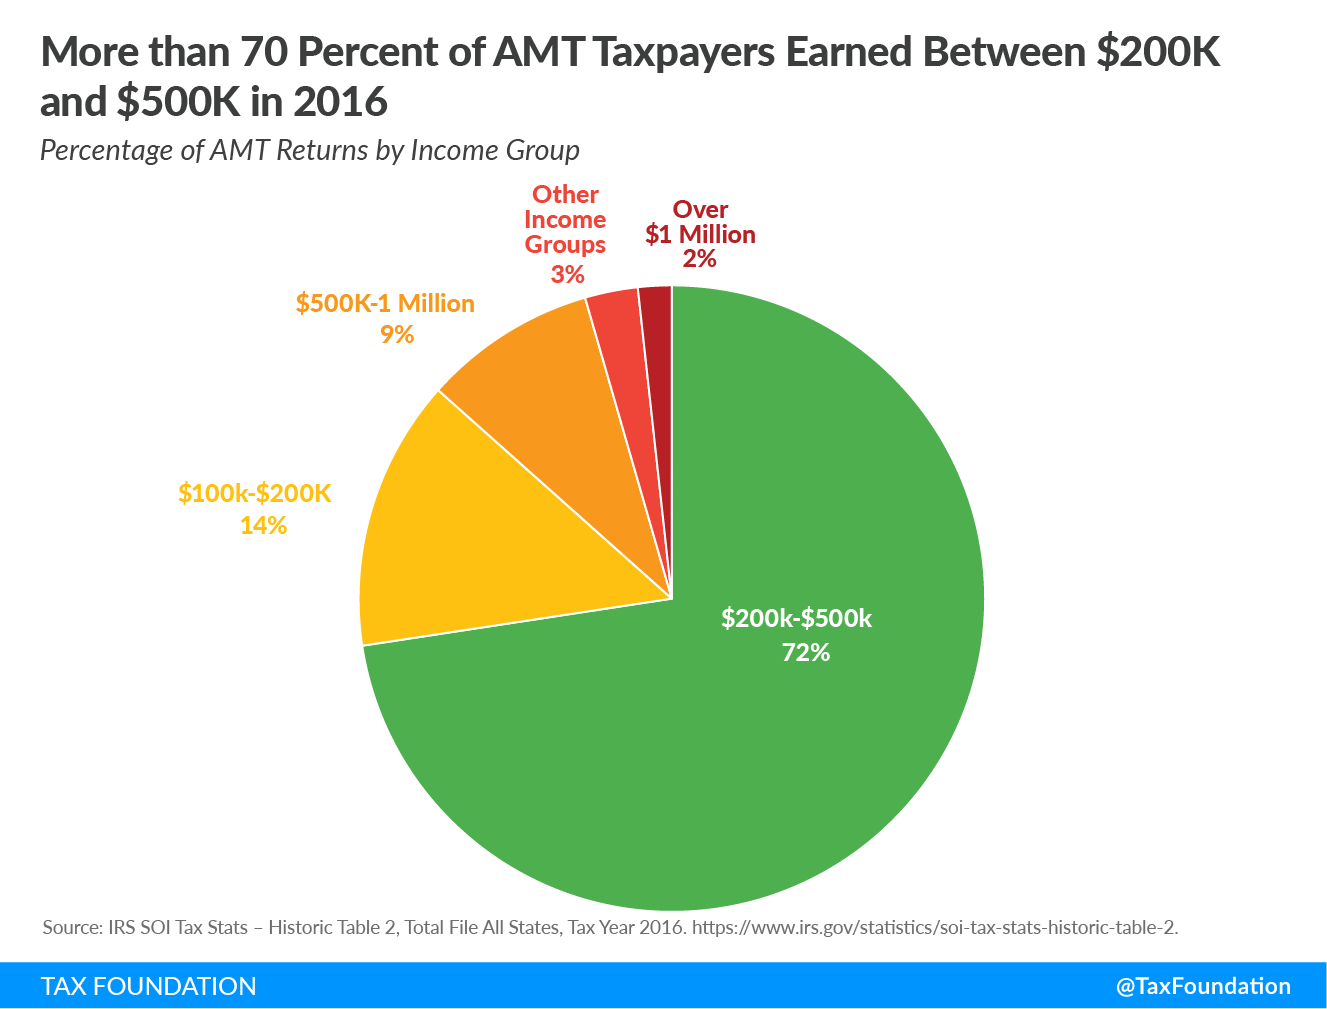 More than 70% of AMT taxpayers earned between $200k and $500k in 2016